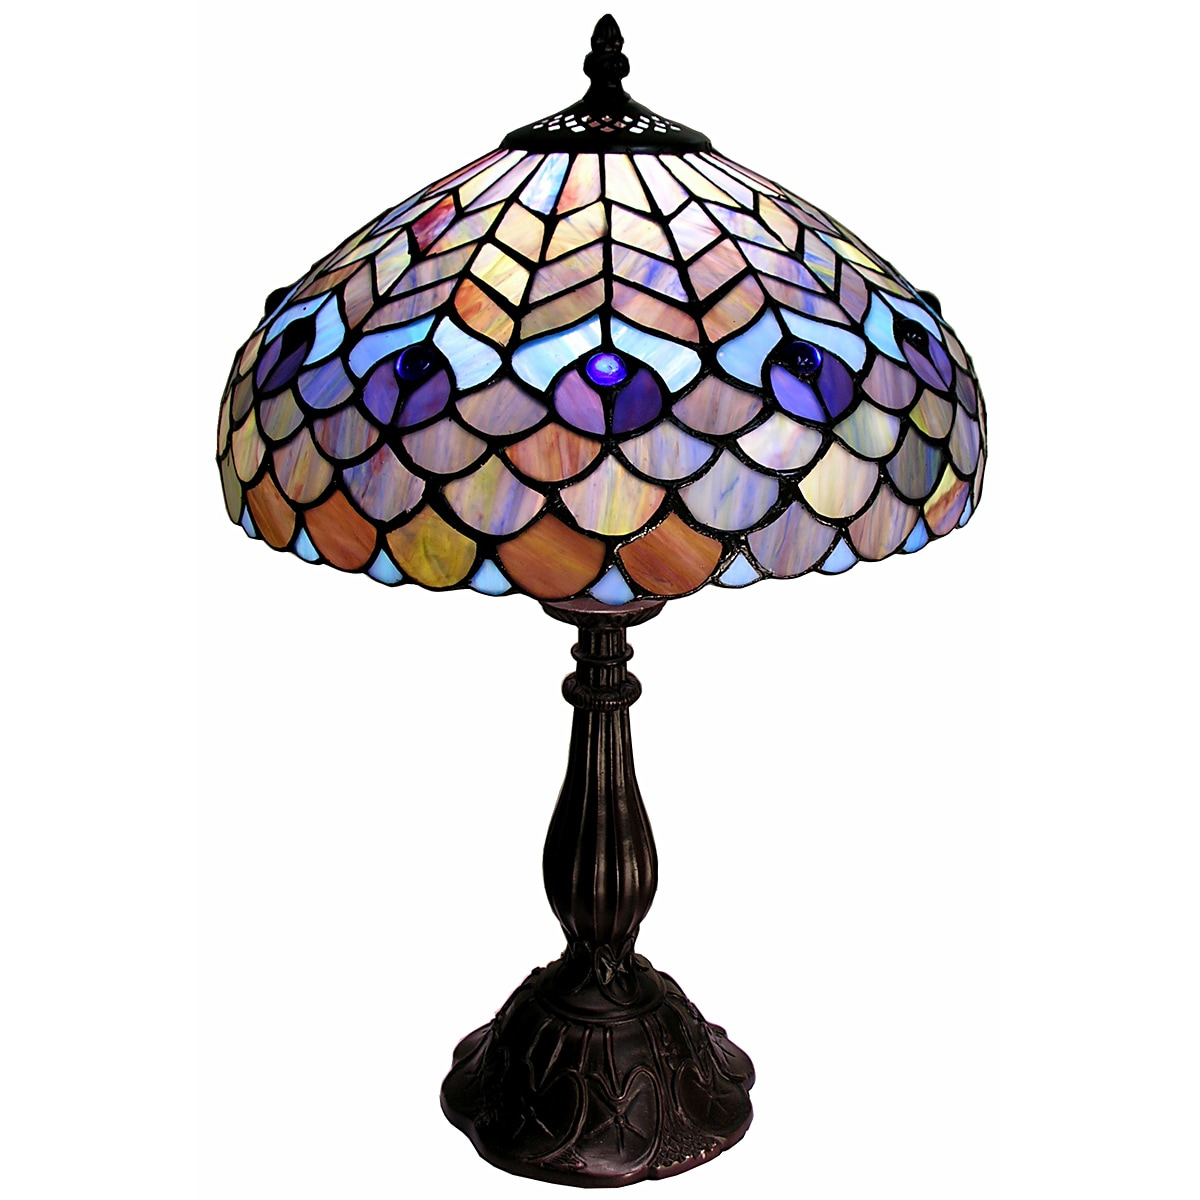 Tiffany Style Peacock Table Lamp 10334764 Overstock